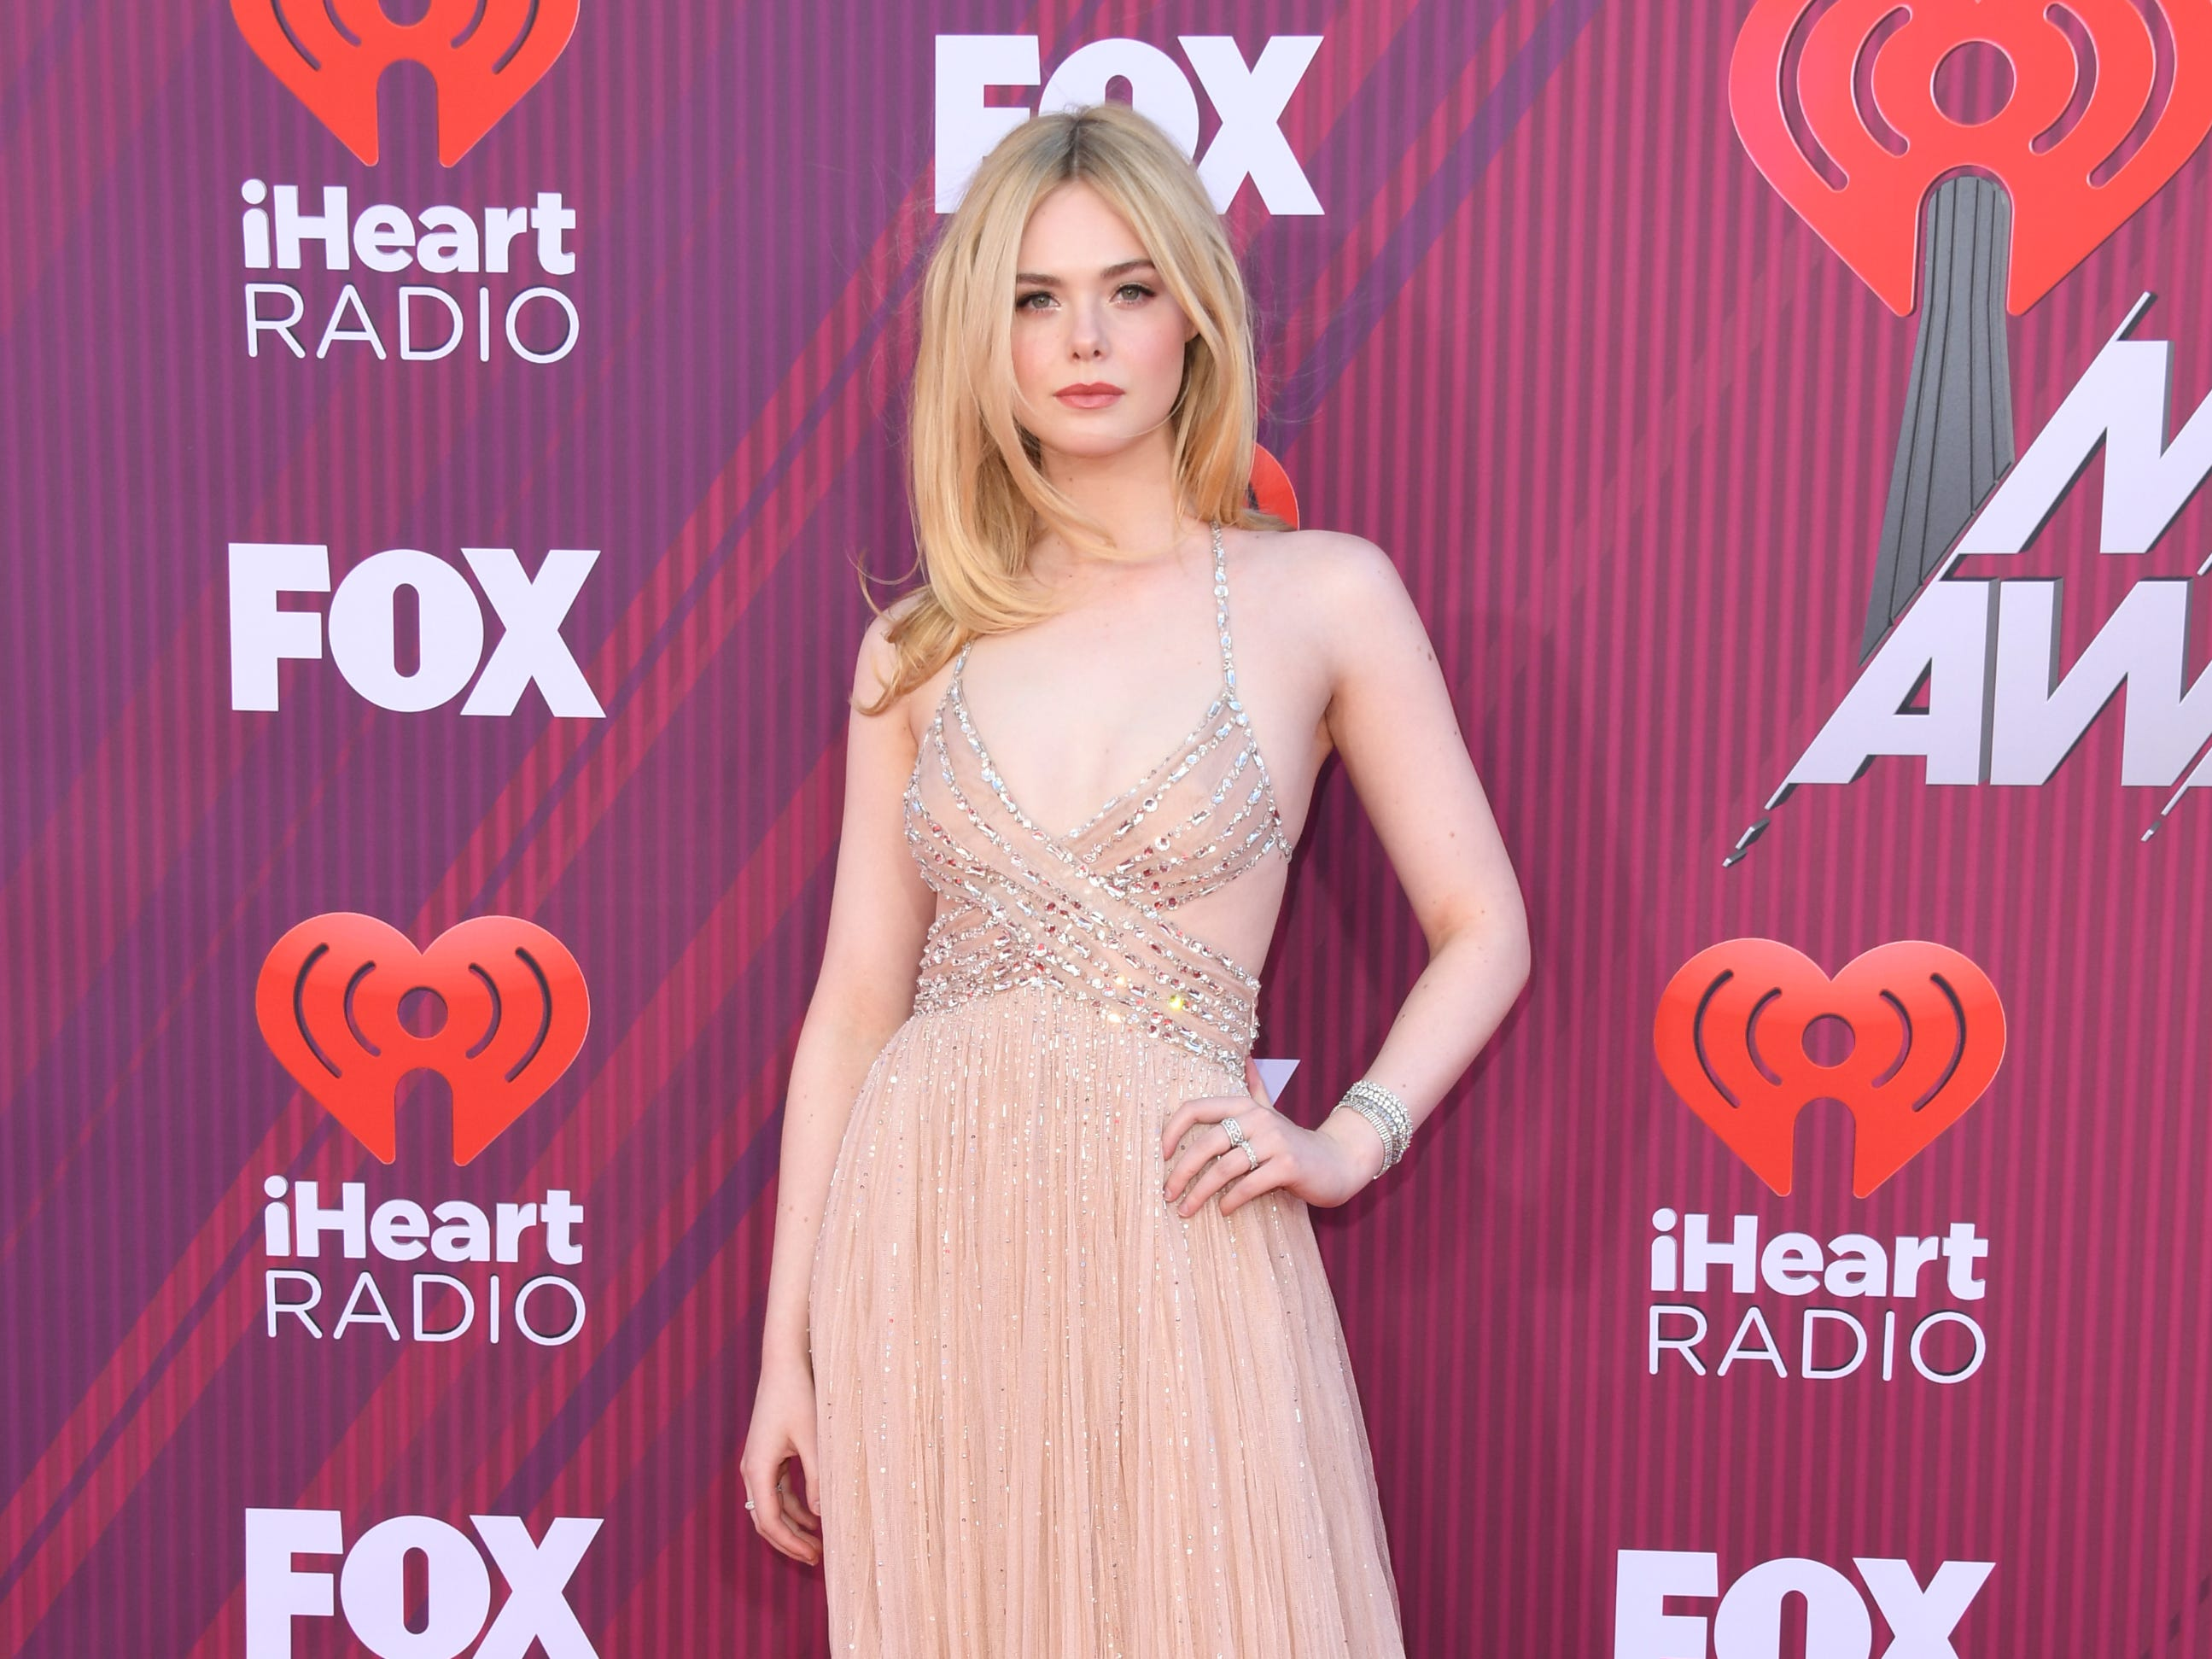 LOS ANGELES, CALIFORNIA - MARCH 14: Elle Fanning attends the 2019 iHeartRadio Music Awards which broadcasted live on FOX at Microsoft Theater on March 14, 2019 in Los Angeles, California. (Photo by Jon Kopaloff/FilmMagic) ORG XMIT: 775279819 ORIG FILE ID: 1135883039